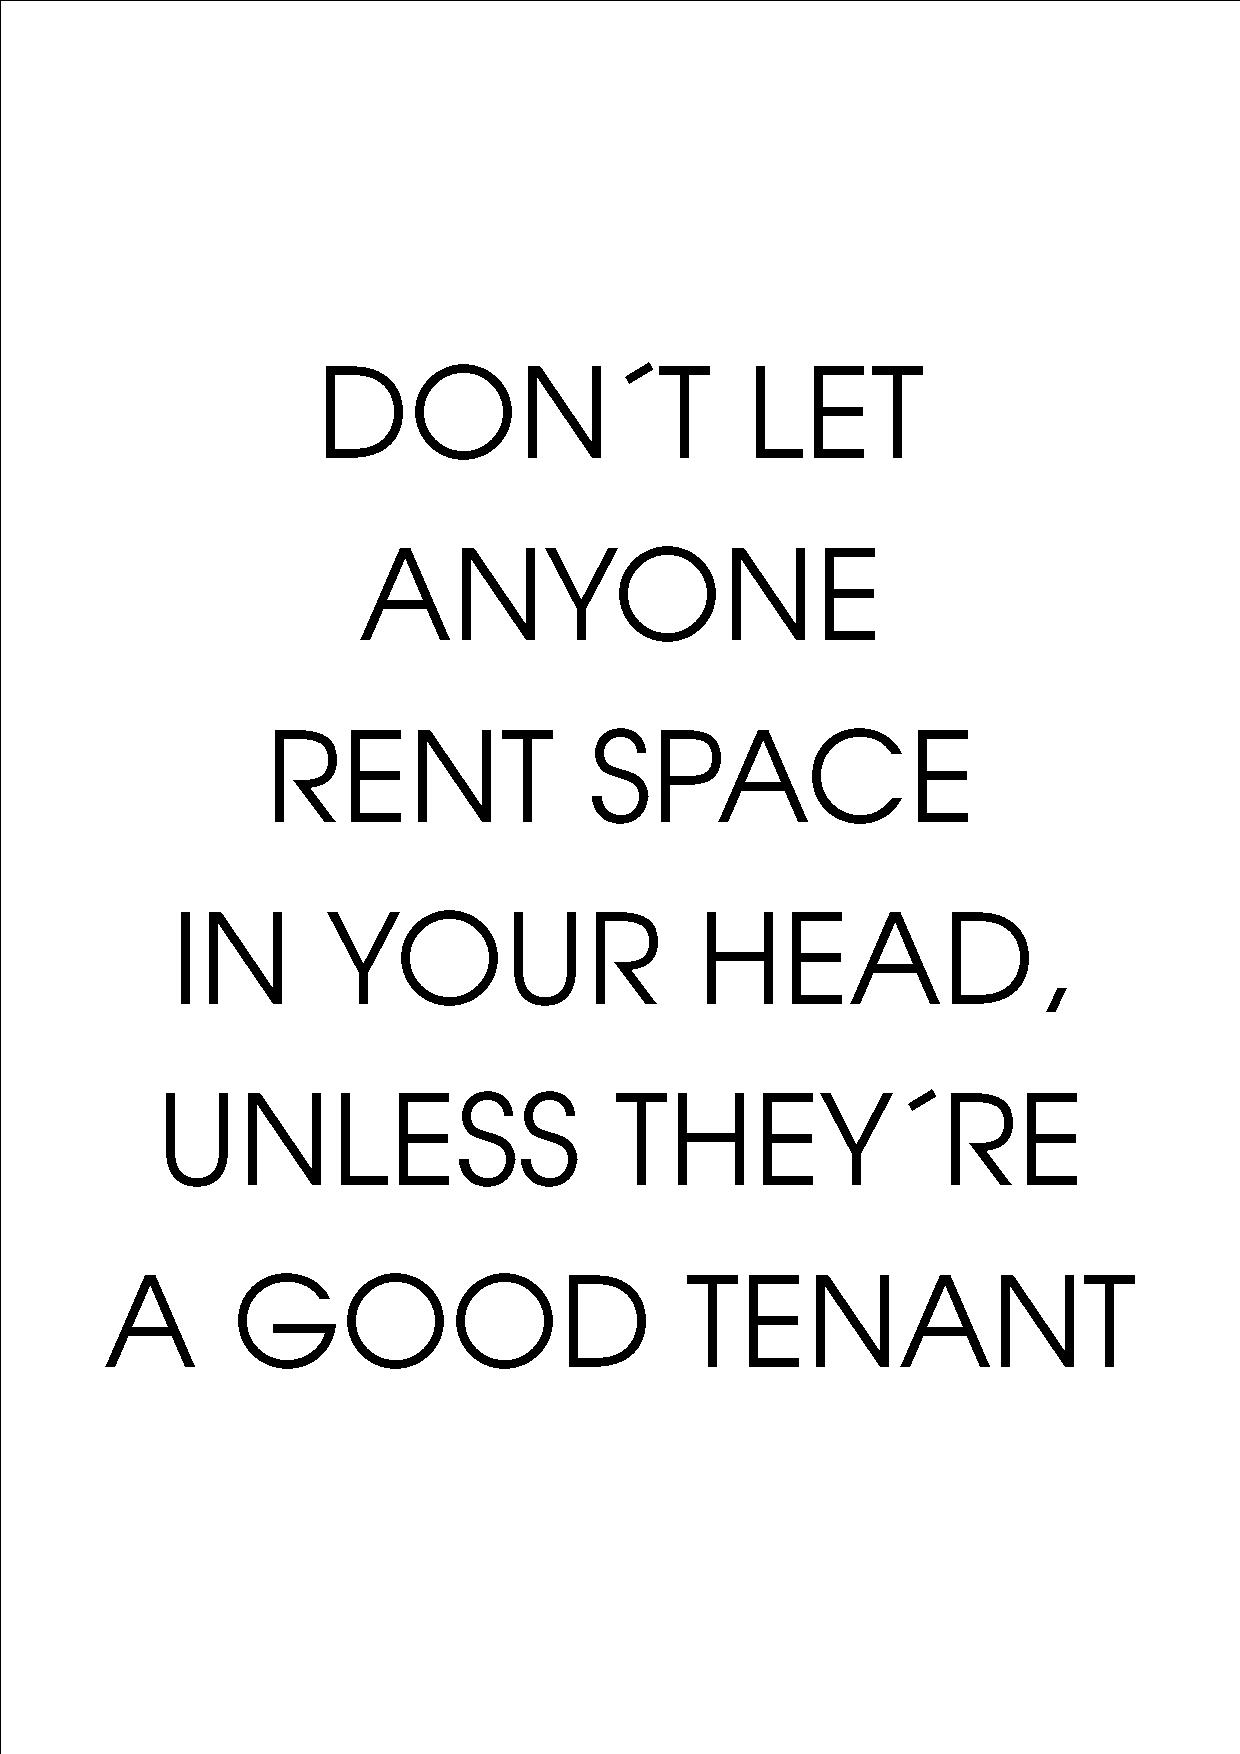 Dont let anyone rent space in your head..